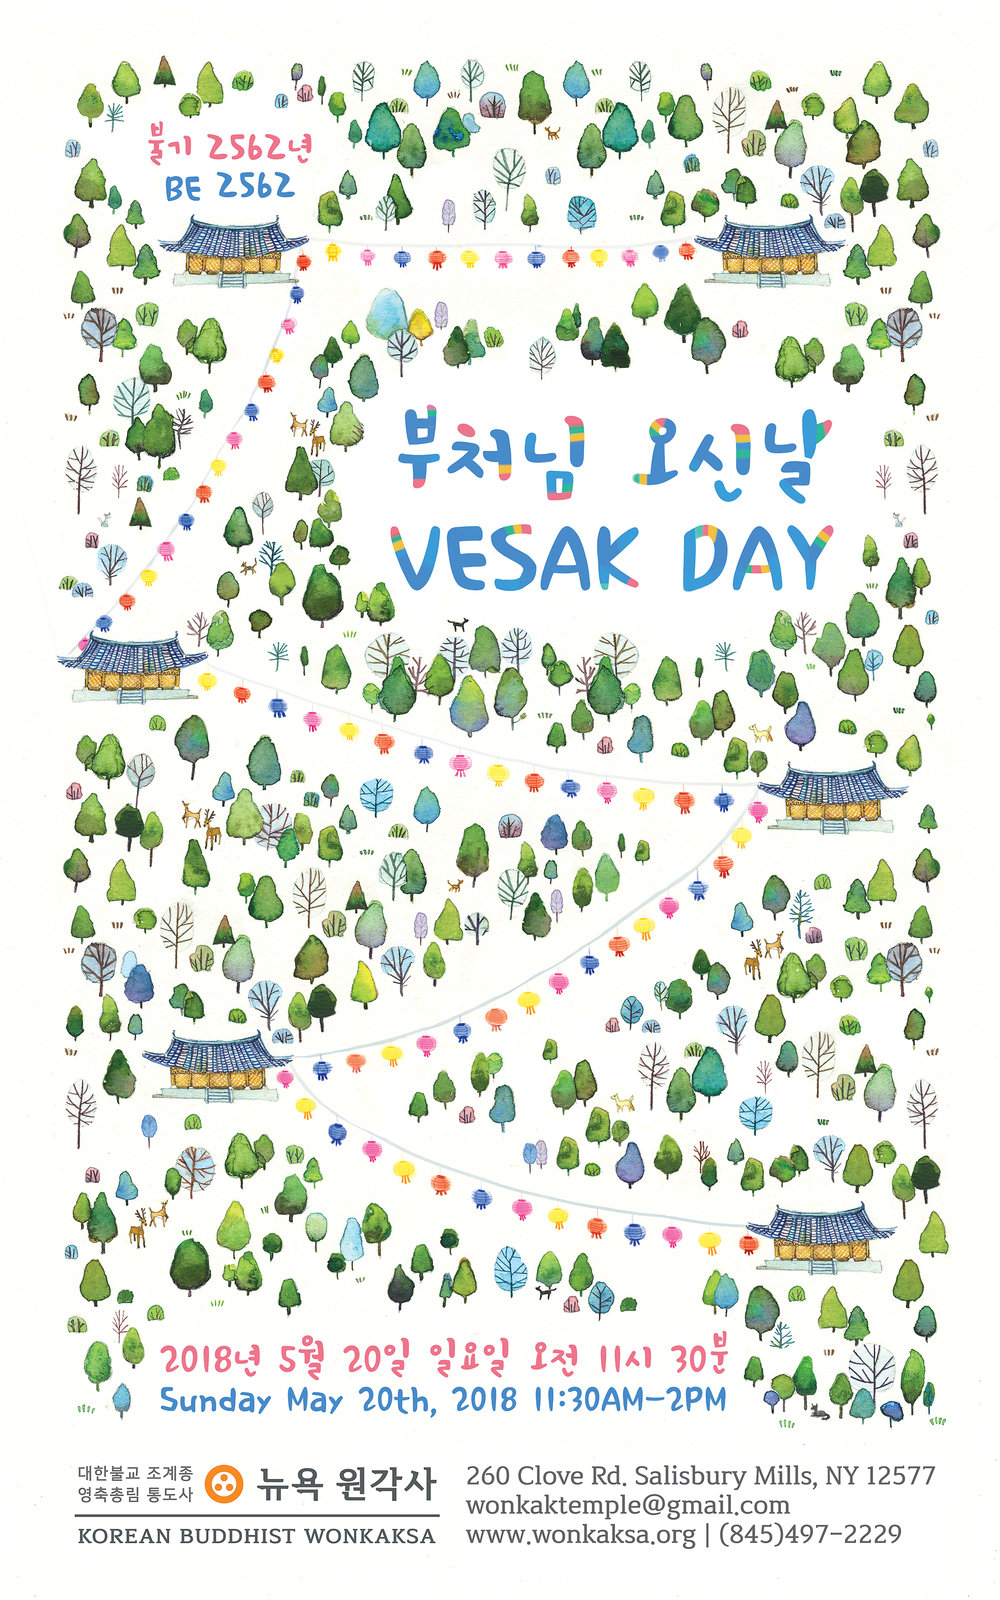 BE2562 VESAK DAY CELEBRATION불기 2562년부처님 오신날 - May 20th at 11:30AM이 세상에 오시어 지혜와 자비로 중생을 제도하신 부처님의 탄신일을 함께 나눌 수 있기를 바랍니다.We hope you and your family can join us and share the wisdom, loving kindness, and compassion that Buddha conveyed in this world.